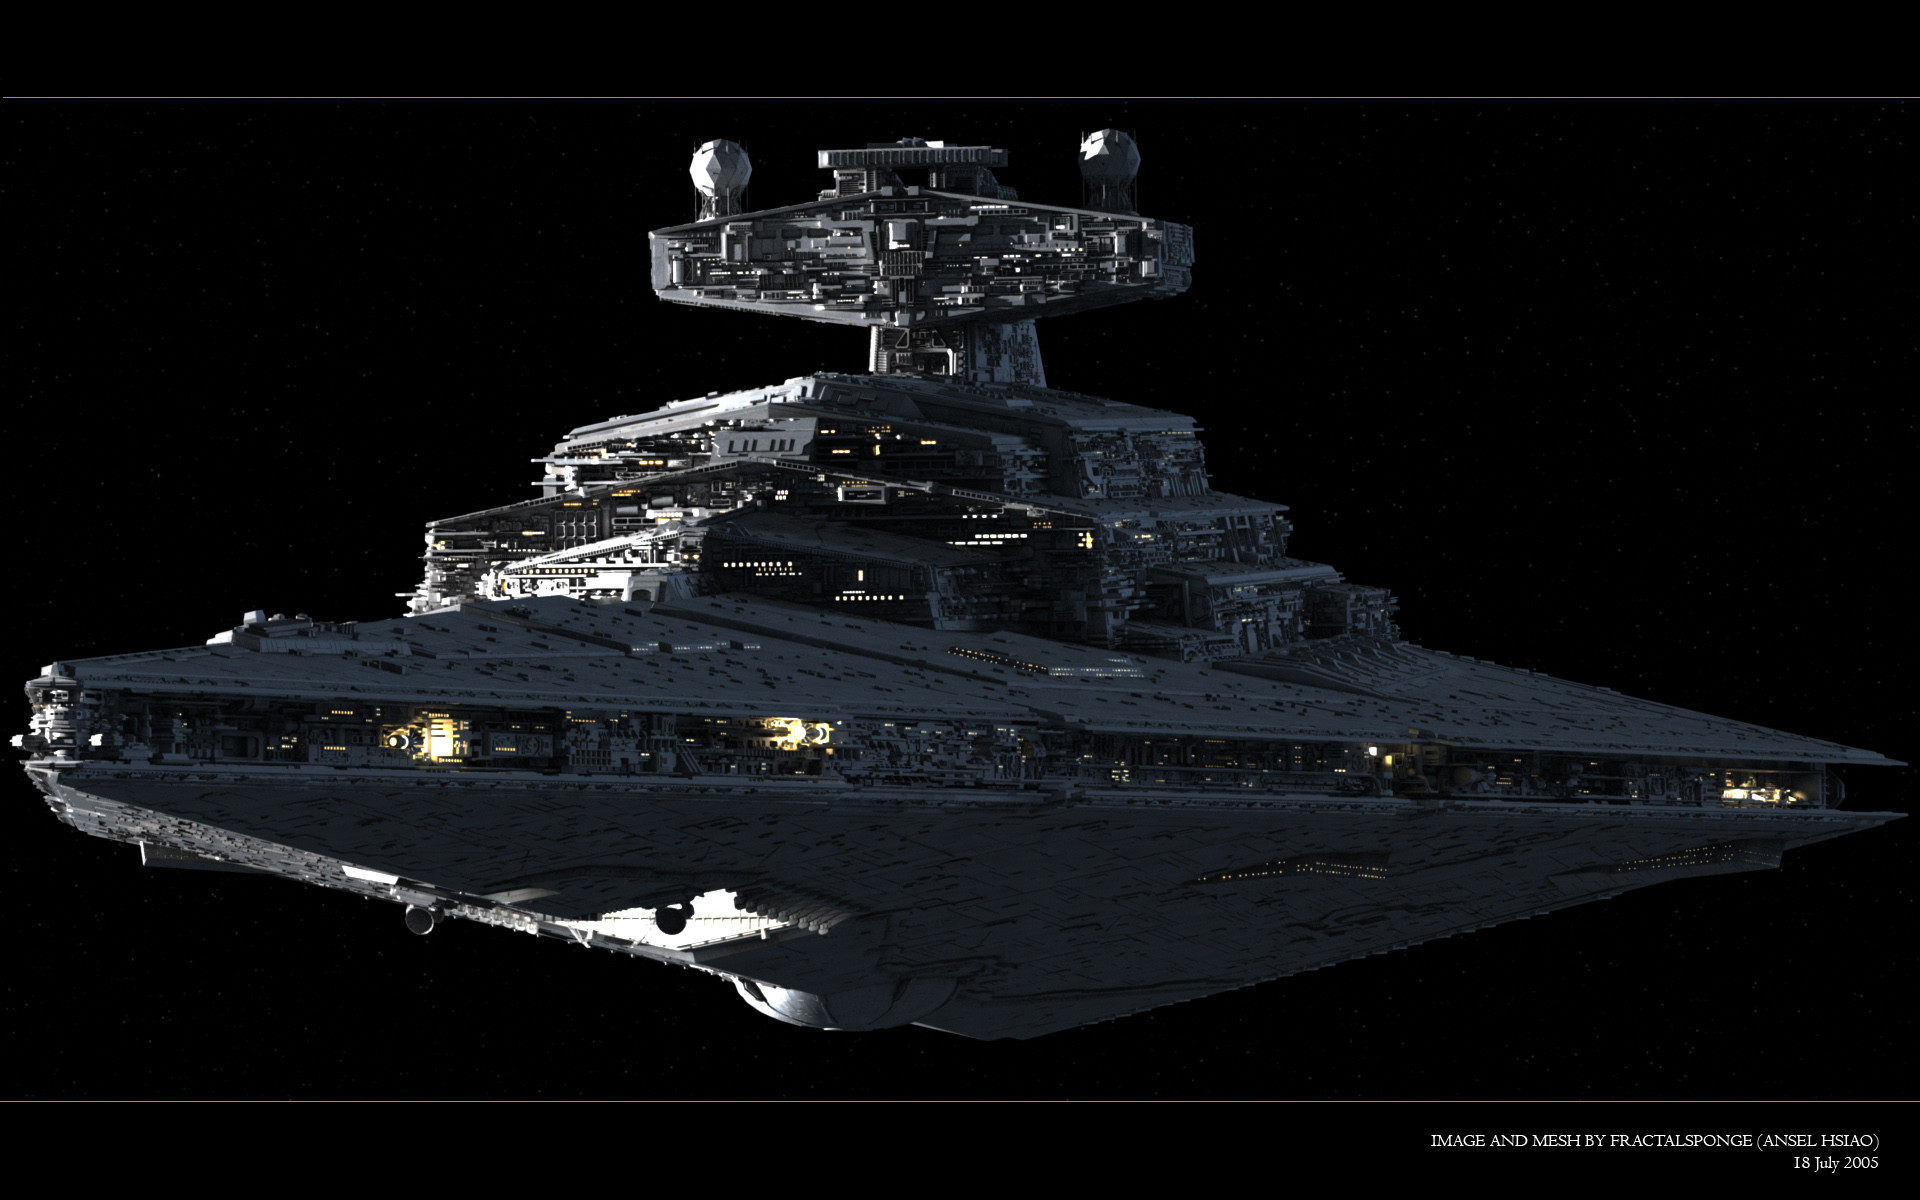 The Imperial War Machine by Ansel Hsiao